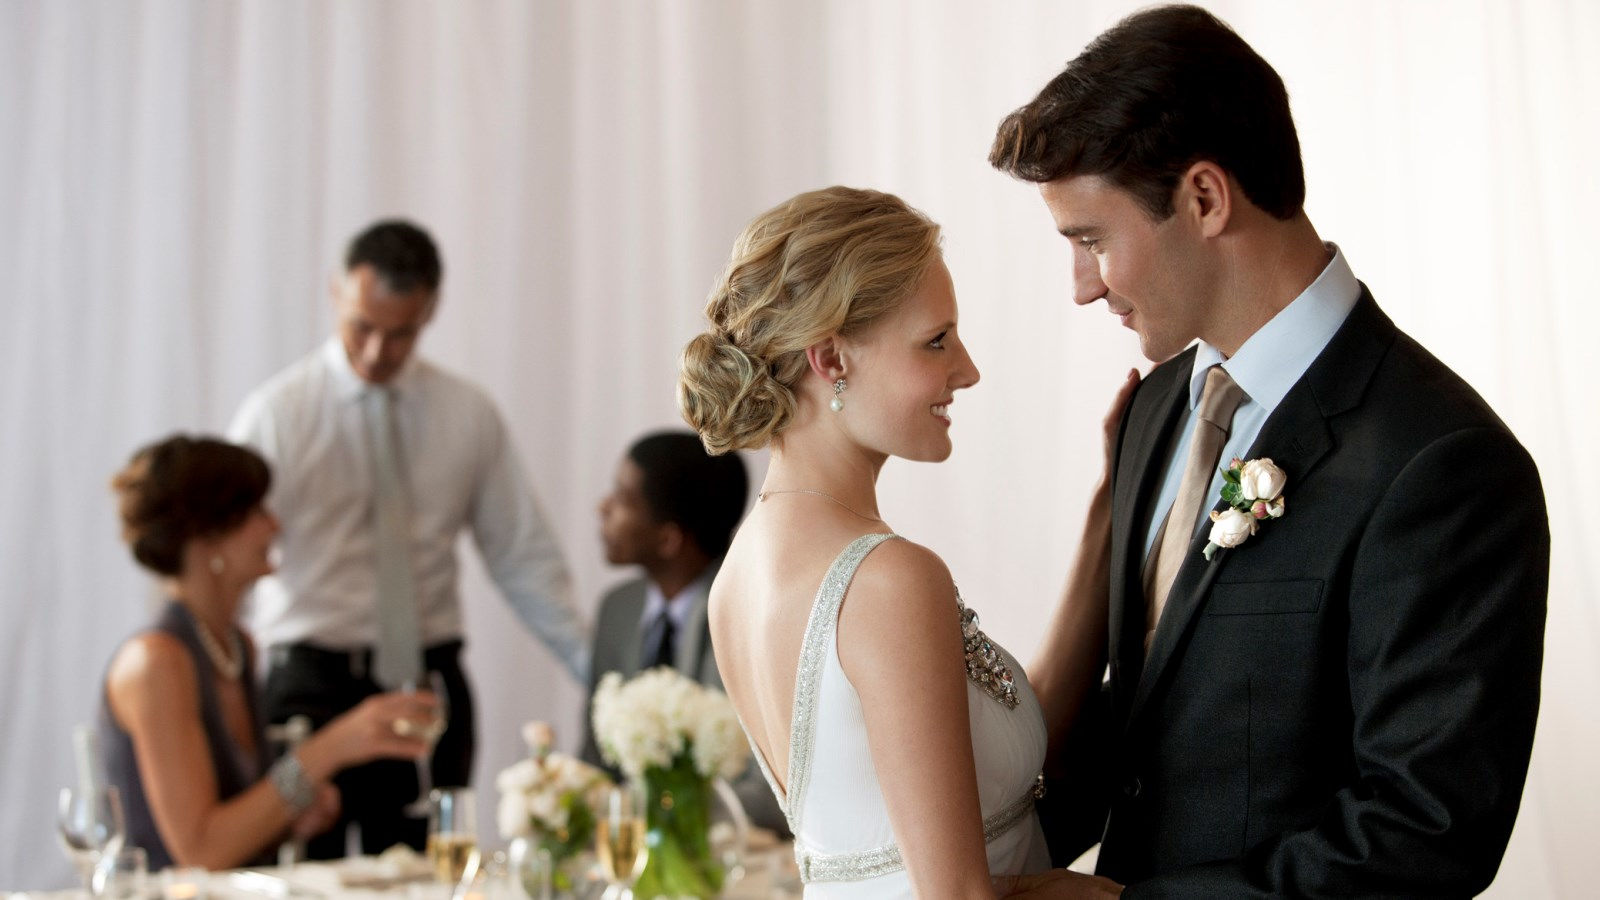 Wedding Venues in Augusta GA - Bride and Groom